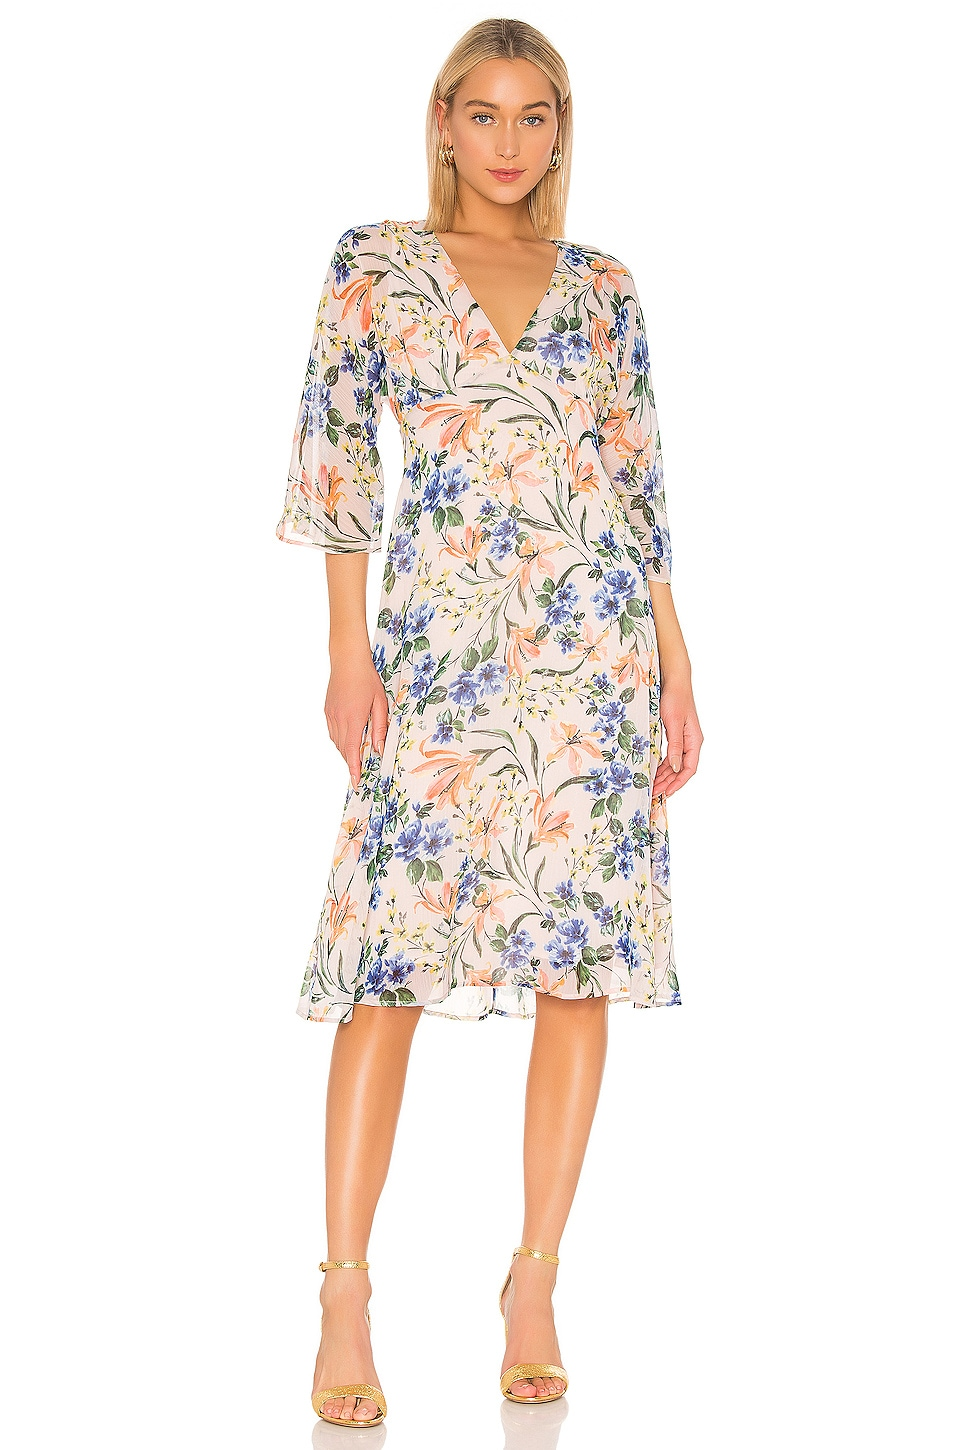 House of Harlow 1960 ROBE AMIRA